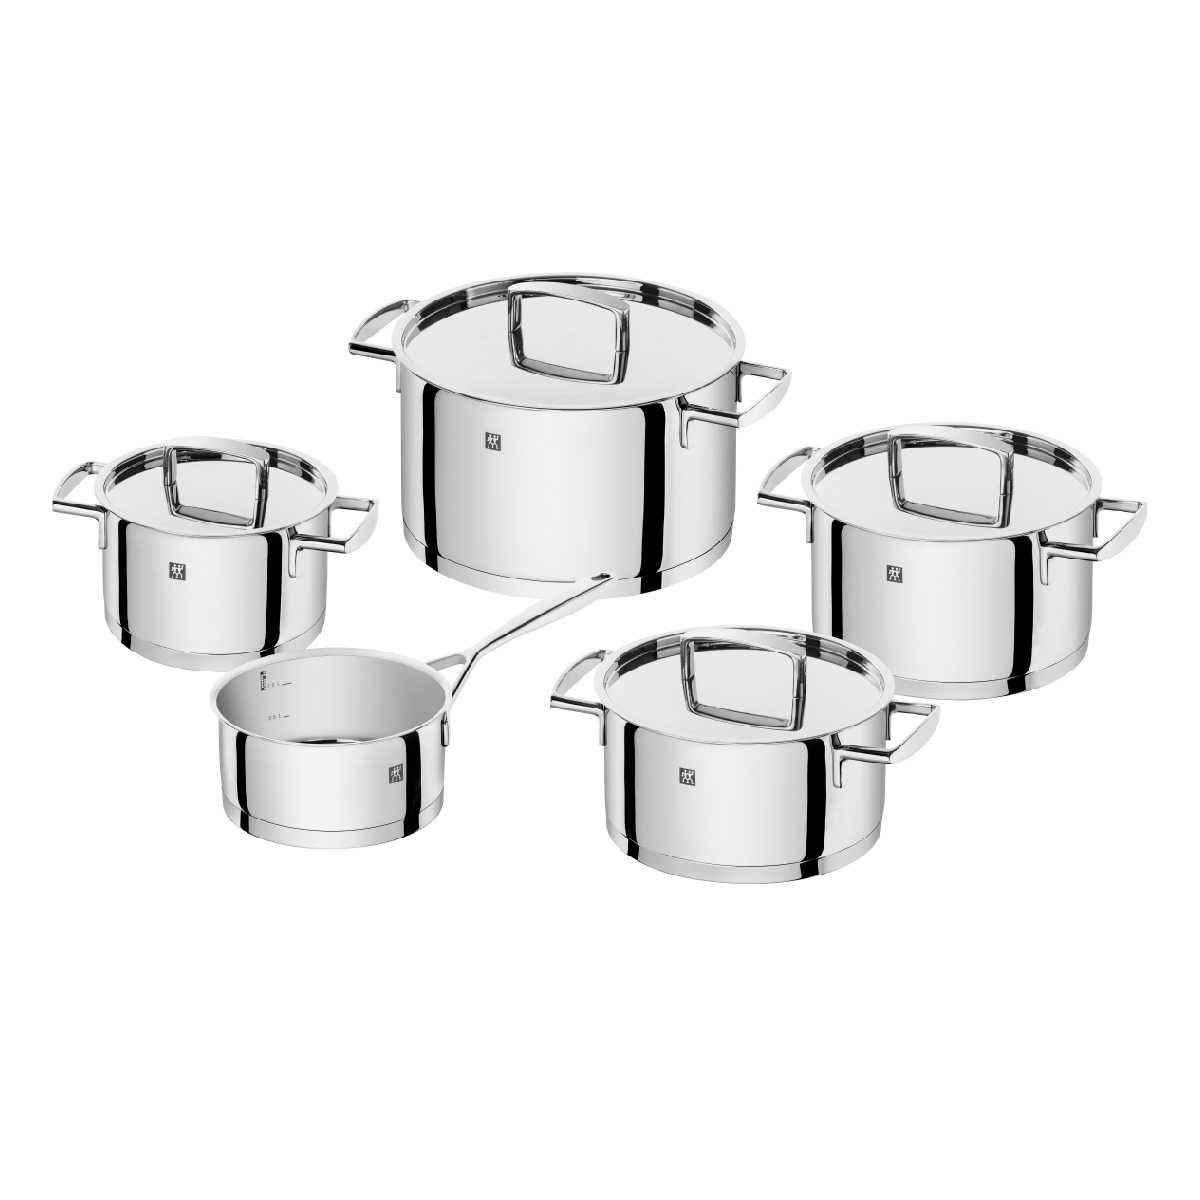 ZWILLING - Passion cookware set - 5pcs